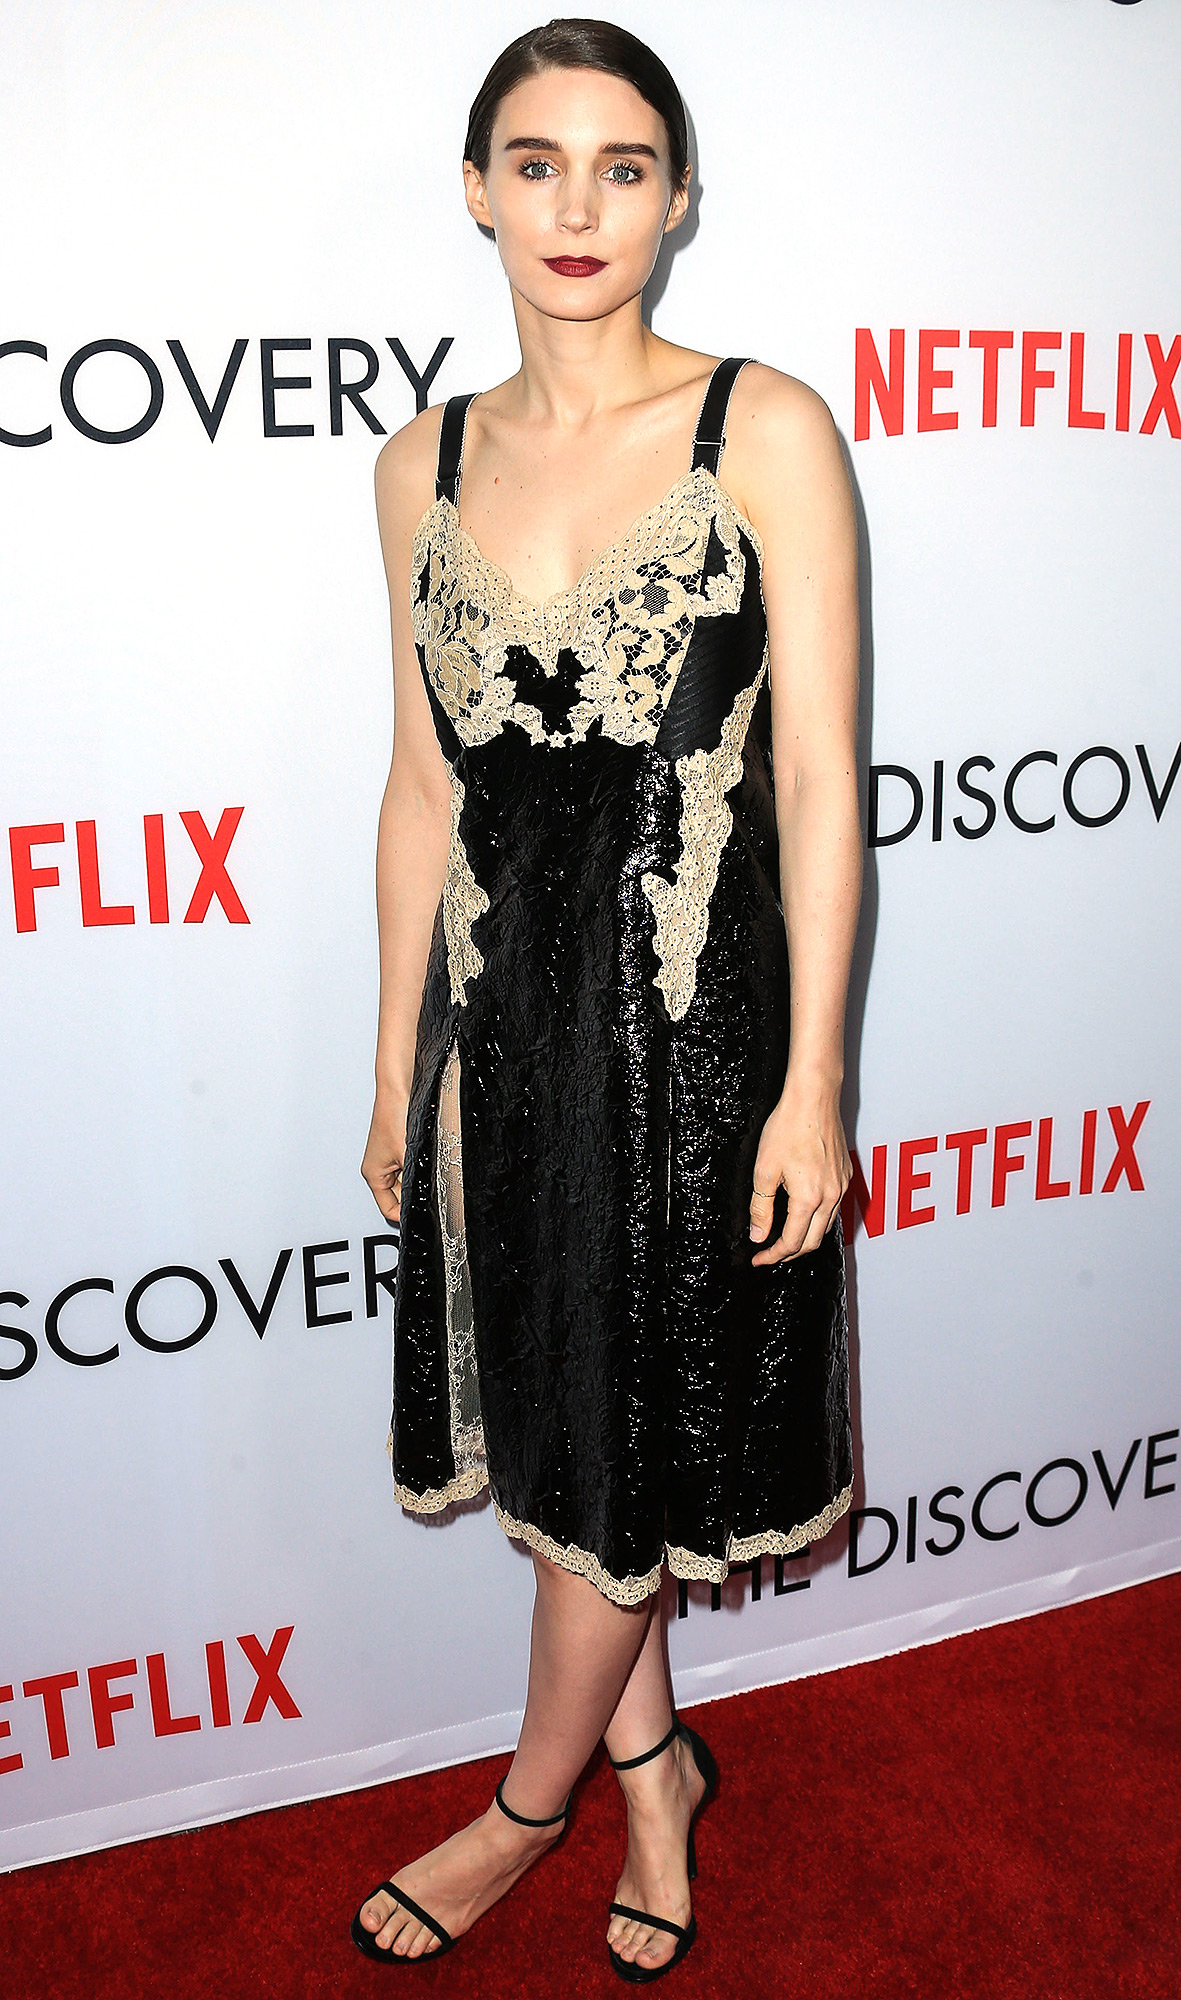 Rooney Mara Has Been Missing Out on All of These Pies Her Whole Life